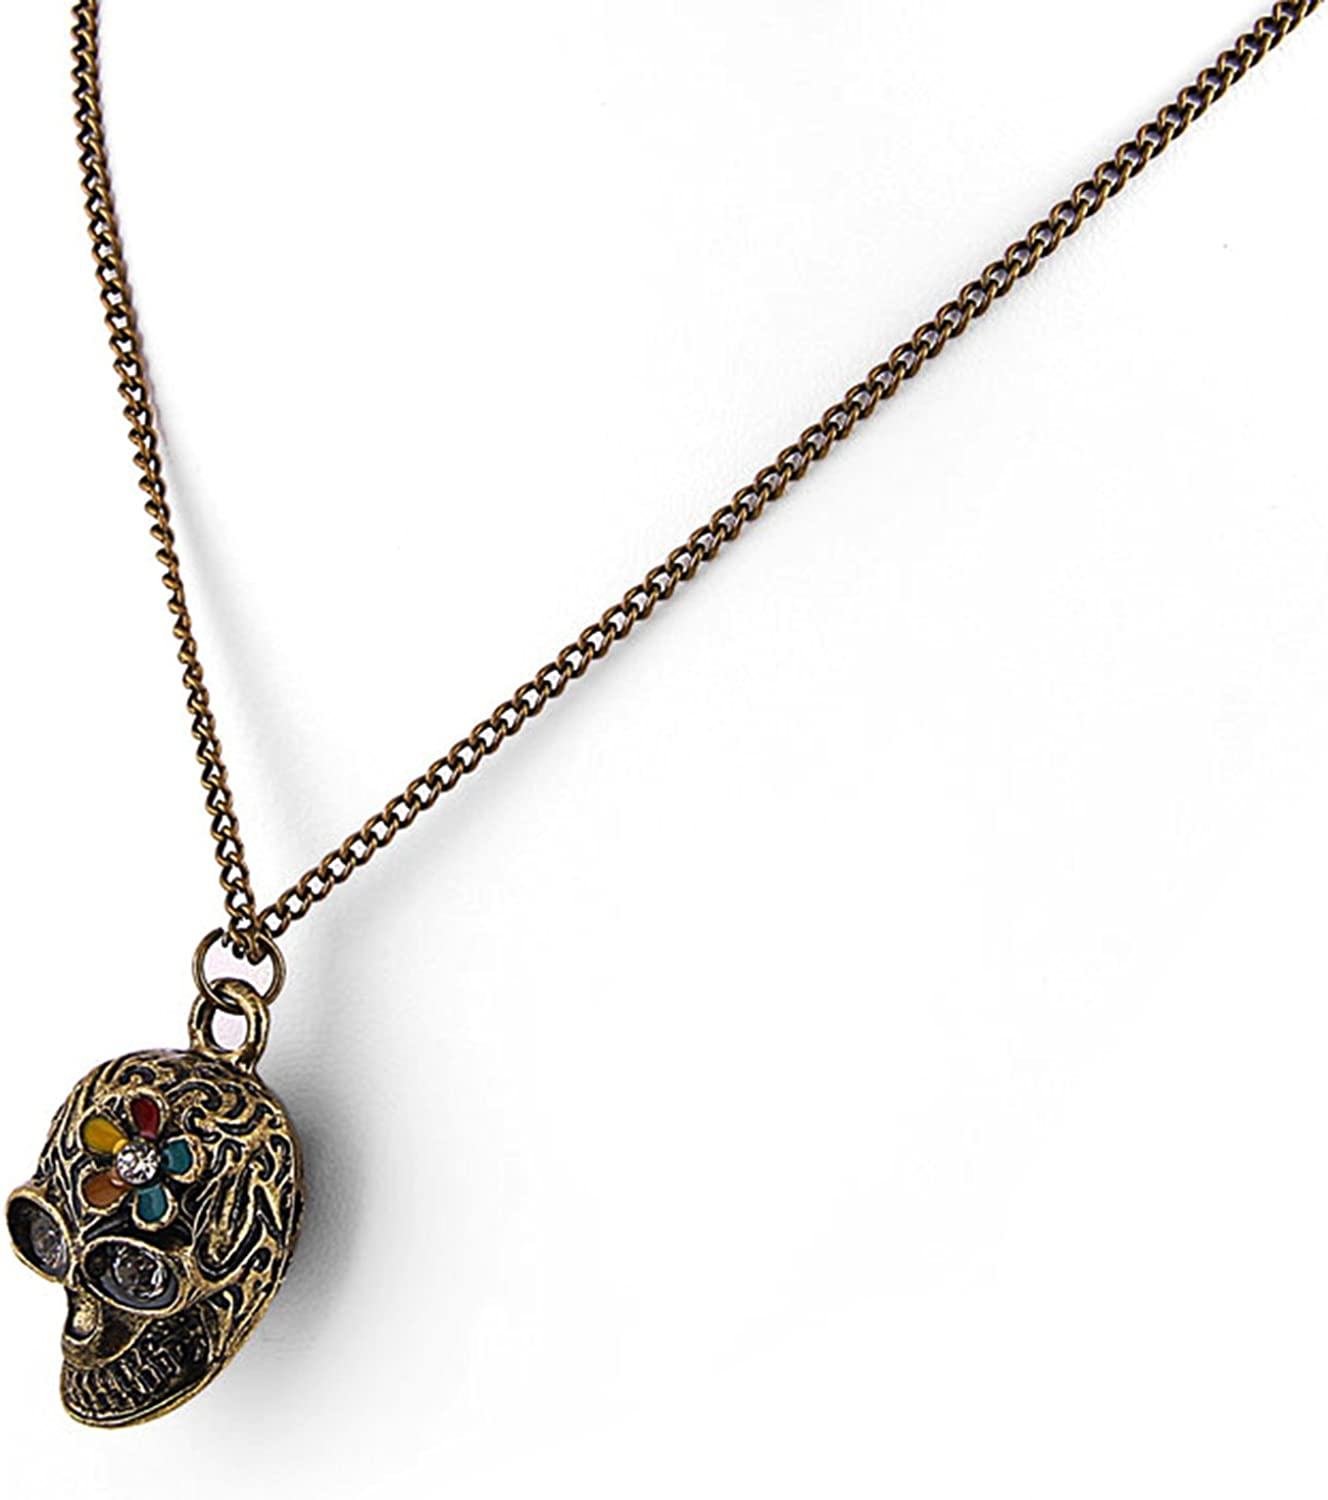 JewelryVolt FN-5421 Gothic Antique Gold Tone Skeleton Skull with Daisy Flower Pendant Necklace with Long 30 Chain